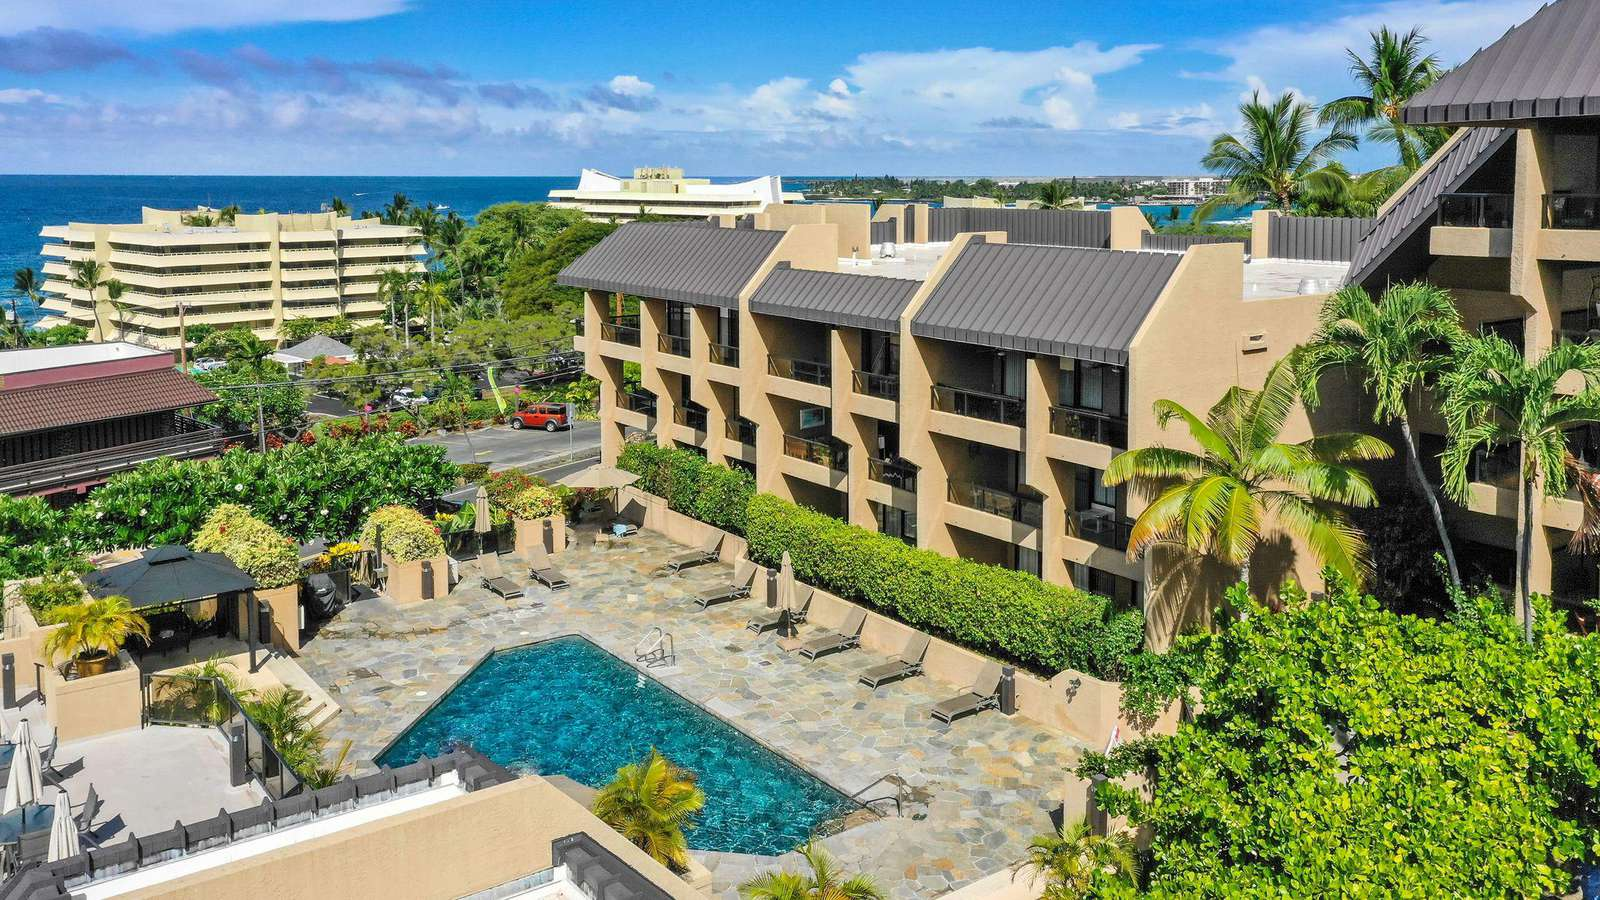 Kona Pacific is a great resort right in town.  Walk to shops, restaurants & more.